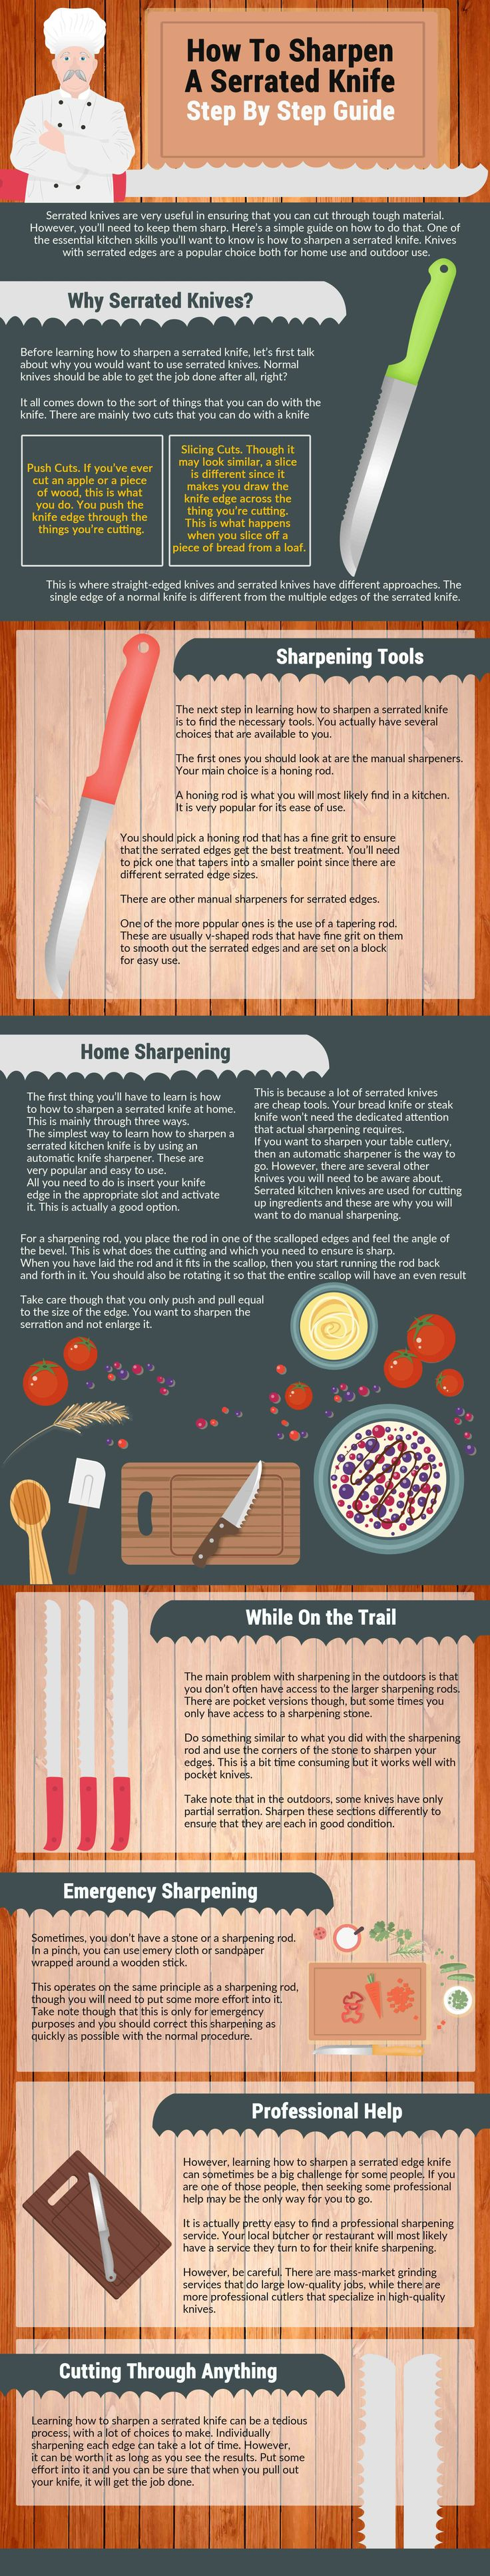 how to sharpen a serrated knife Infographics, how to sharpen a serrated knife